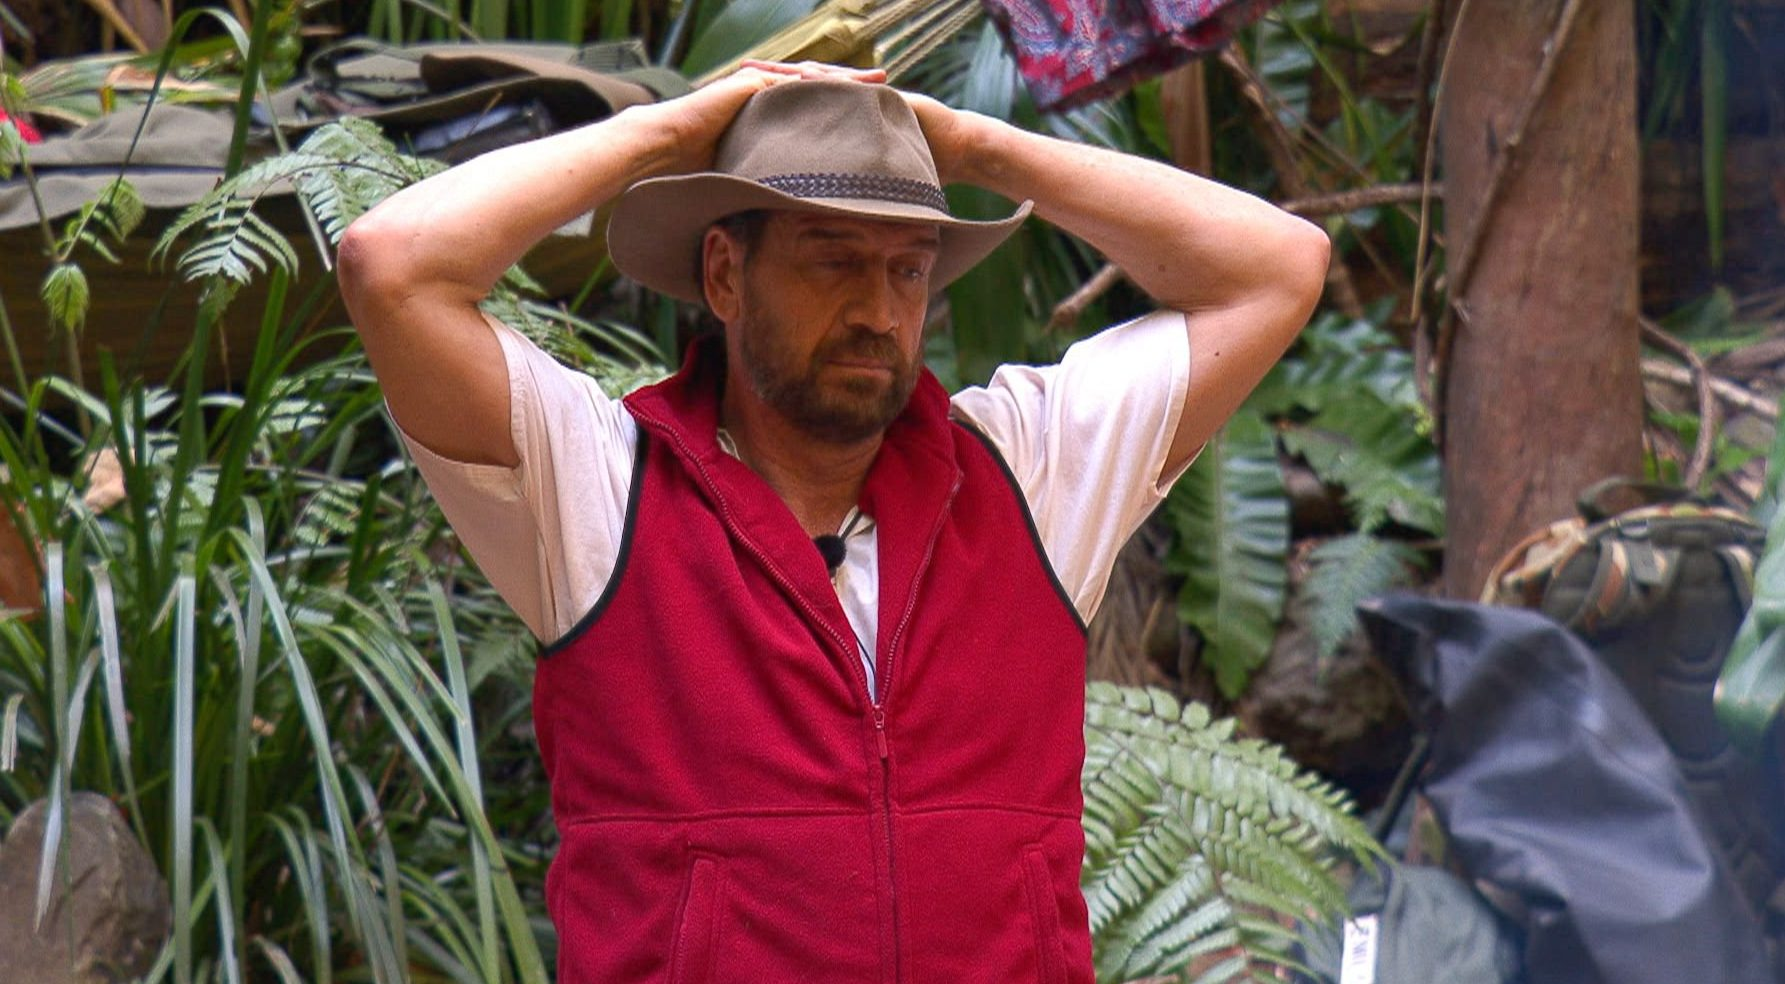 STRICT EMBARGO - NOT TO BE USED BEFORE 22:00 GMT, 23 NOV 2018 - EDITORIAL USE ONLY Mandatory Credit: Photo by ITV/REX (9991011gg) Nick Knowles 'I'm a Celebrity... Get Me Out of Here!' TV Show, Series 18, Australia - 23 Nov 2018